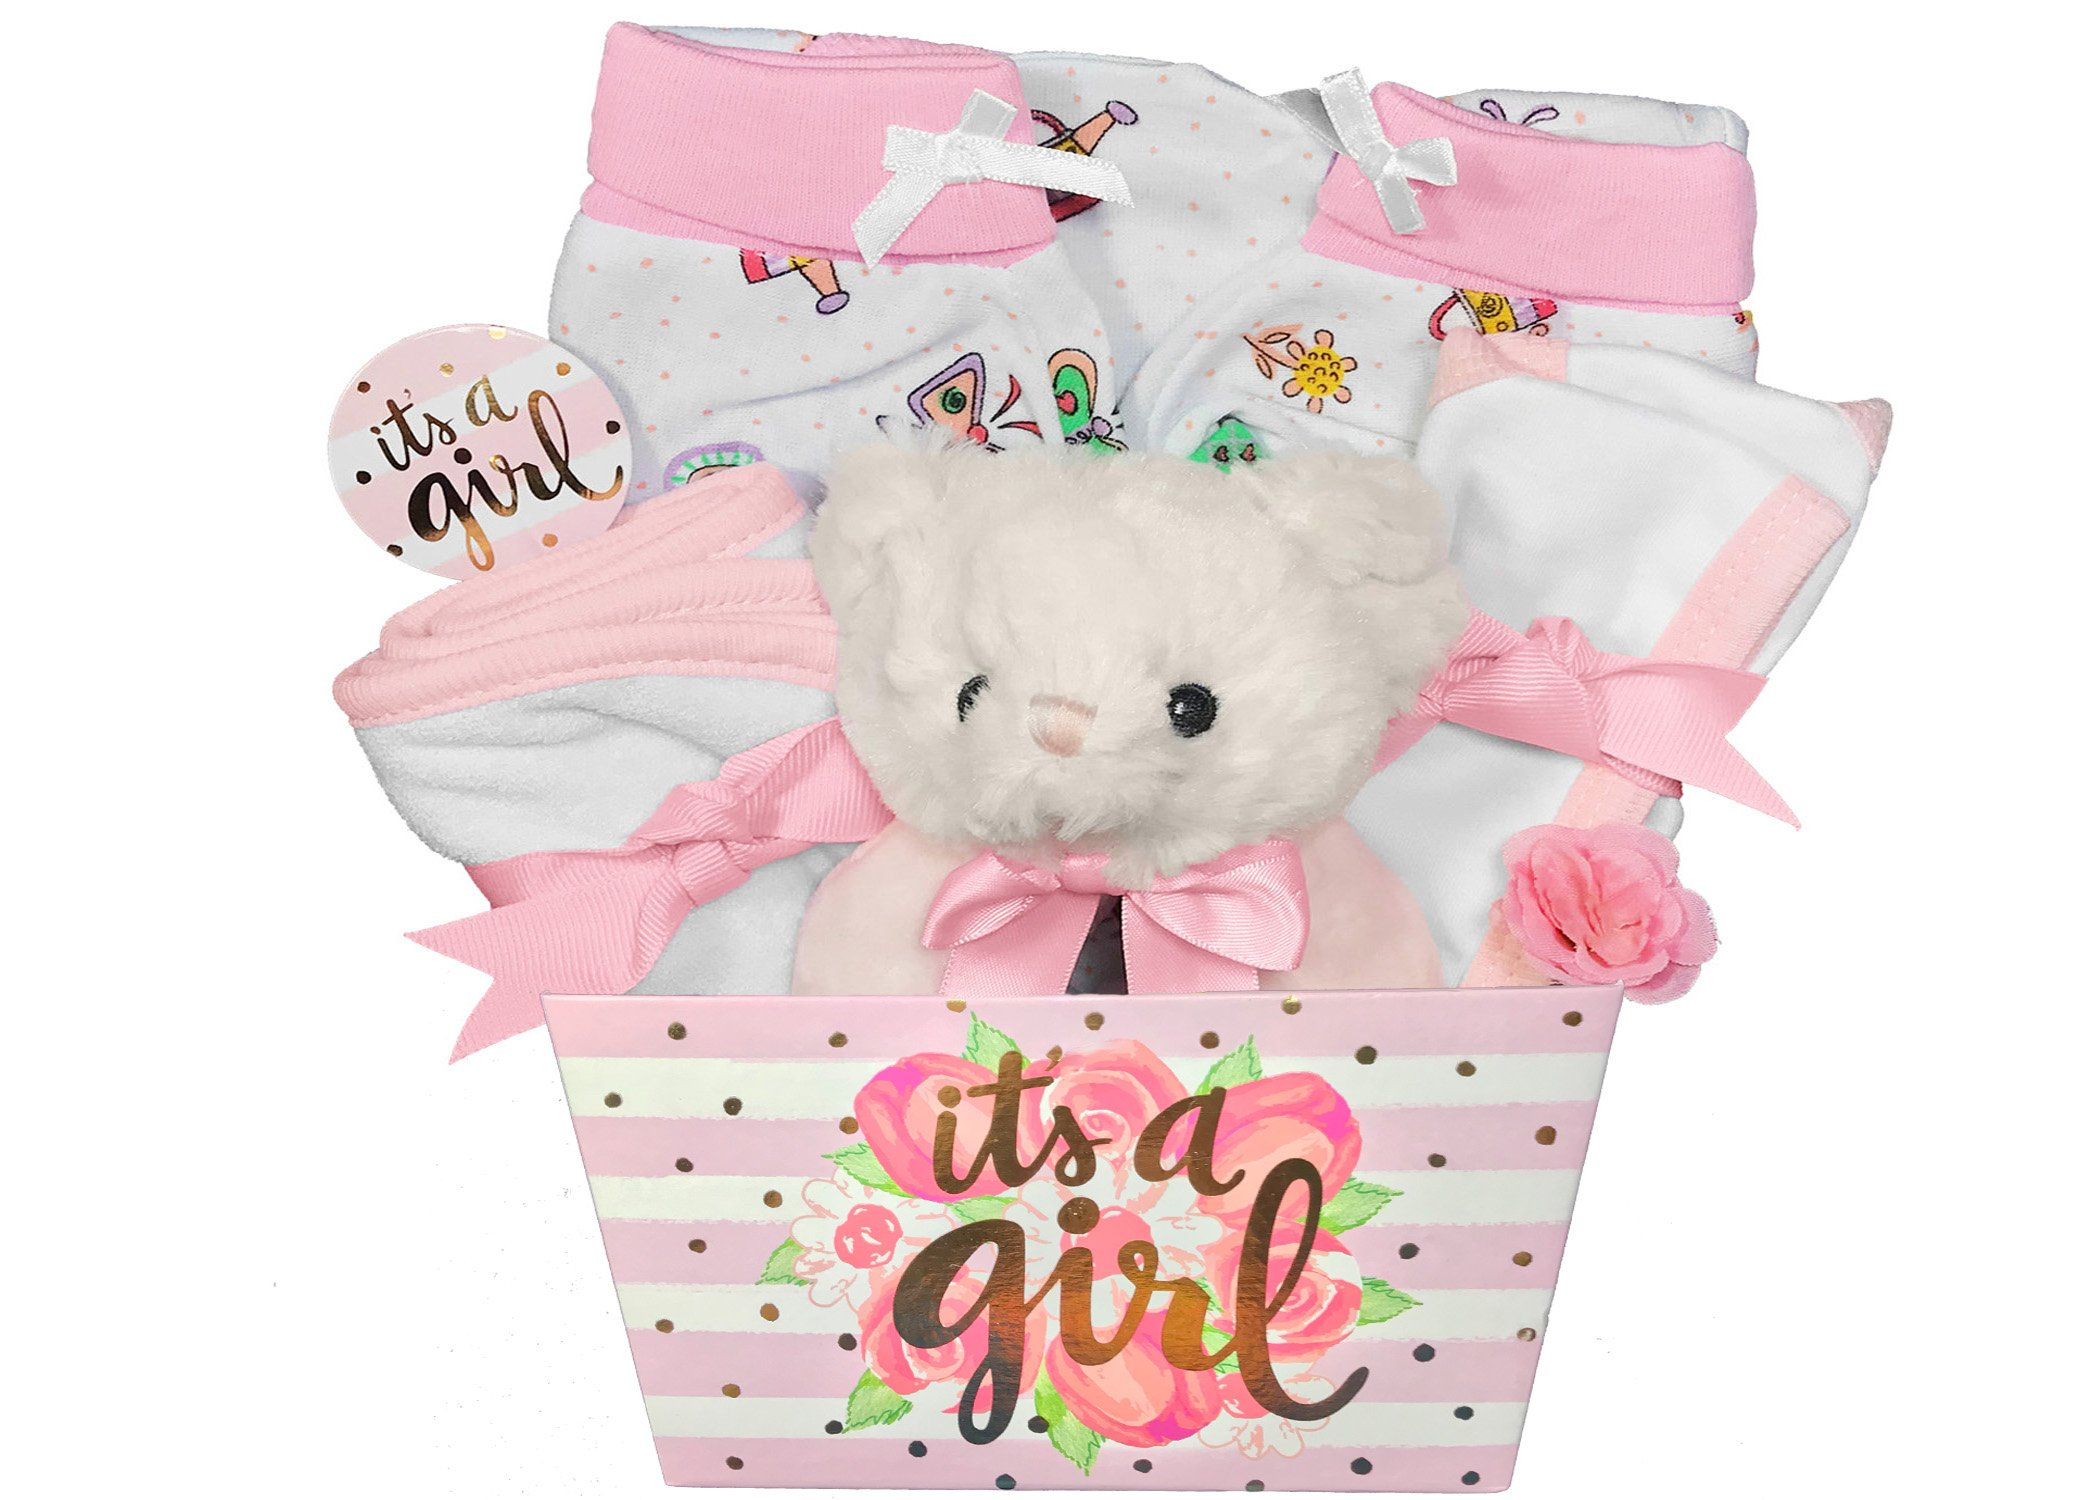 Teddy Bear Baby Gift Basket - 8 Piece It's a Girl Gift Set - Pink and Gold